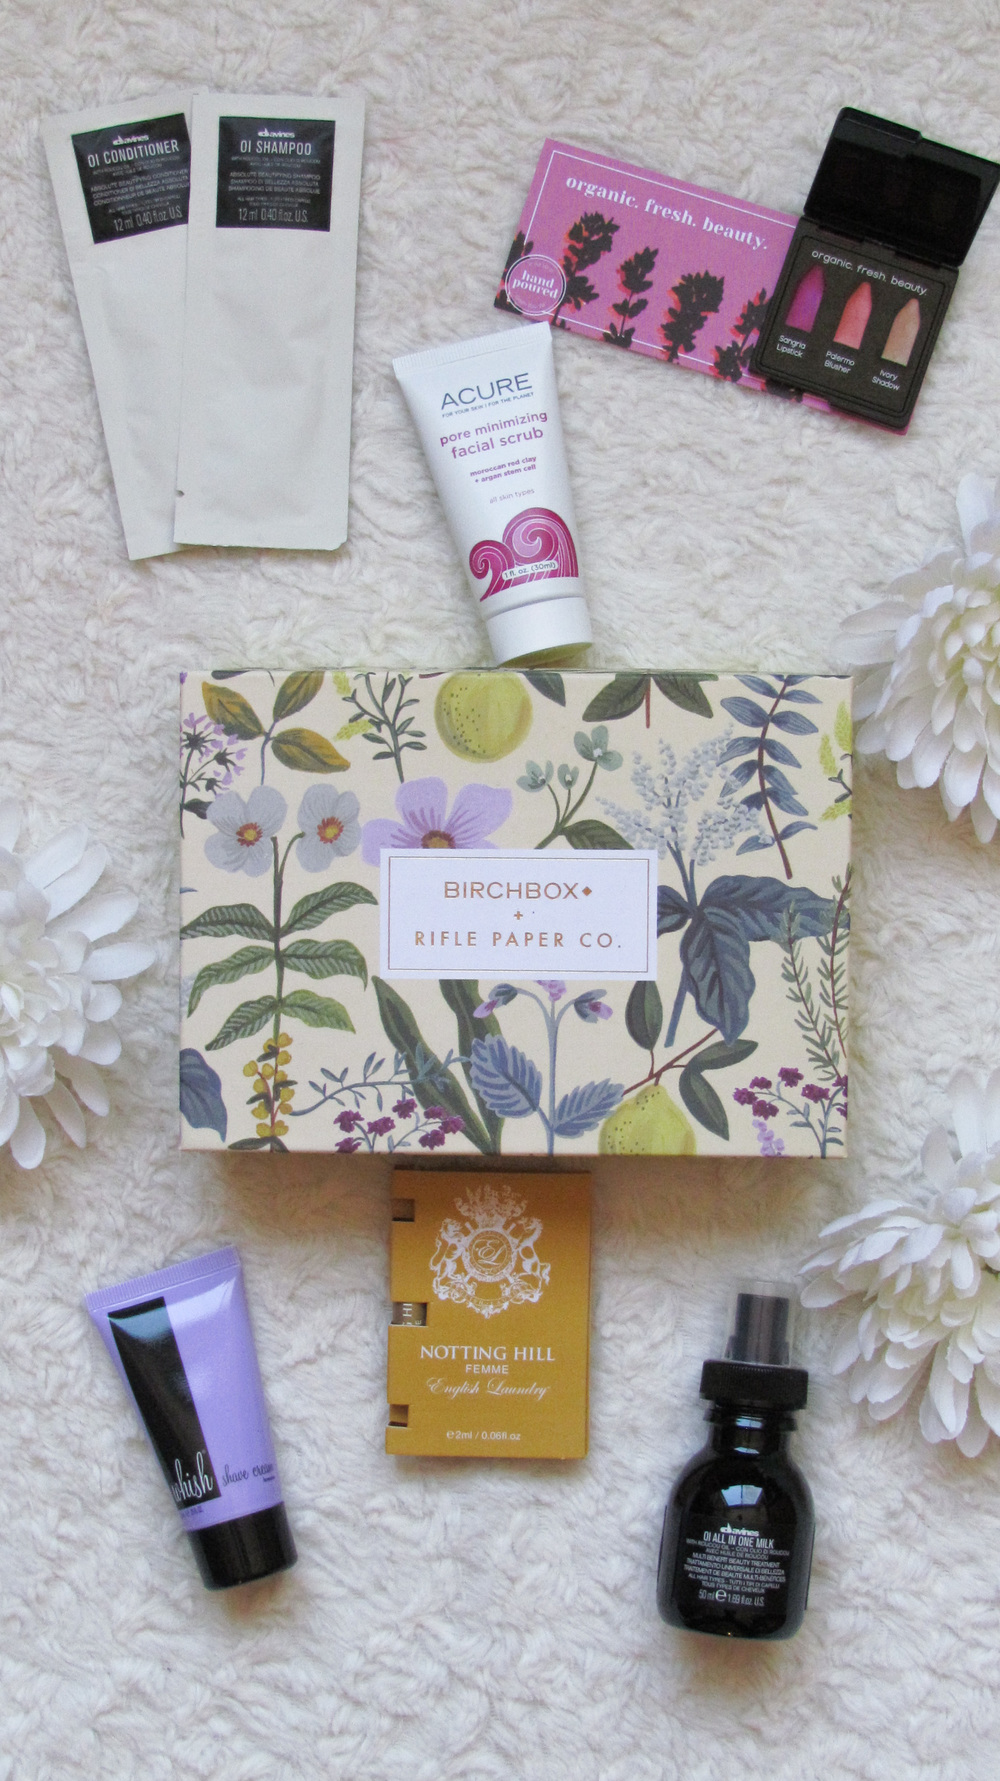 Birchbox - Davines Oi shampoo, conditioner, and hair milk, Au Naturale cosmetics trio set, Whish shave cream, English Laundry Notting Hill Femme Fragrance, Acure Organics pore minimizing facial scrub